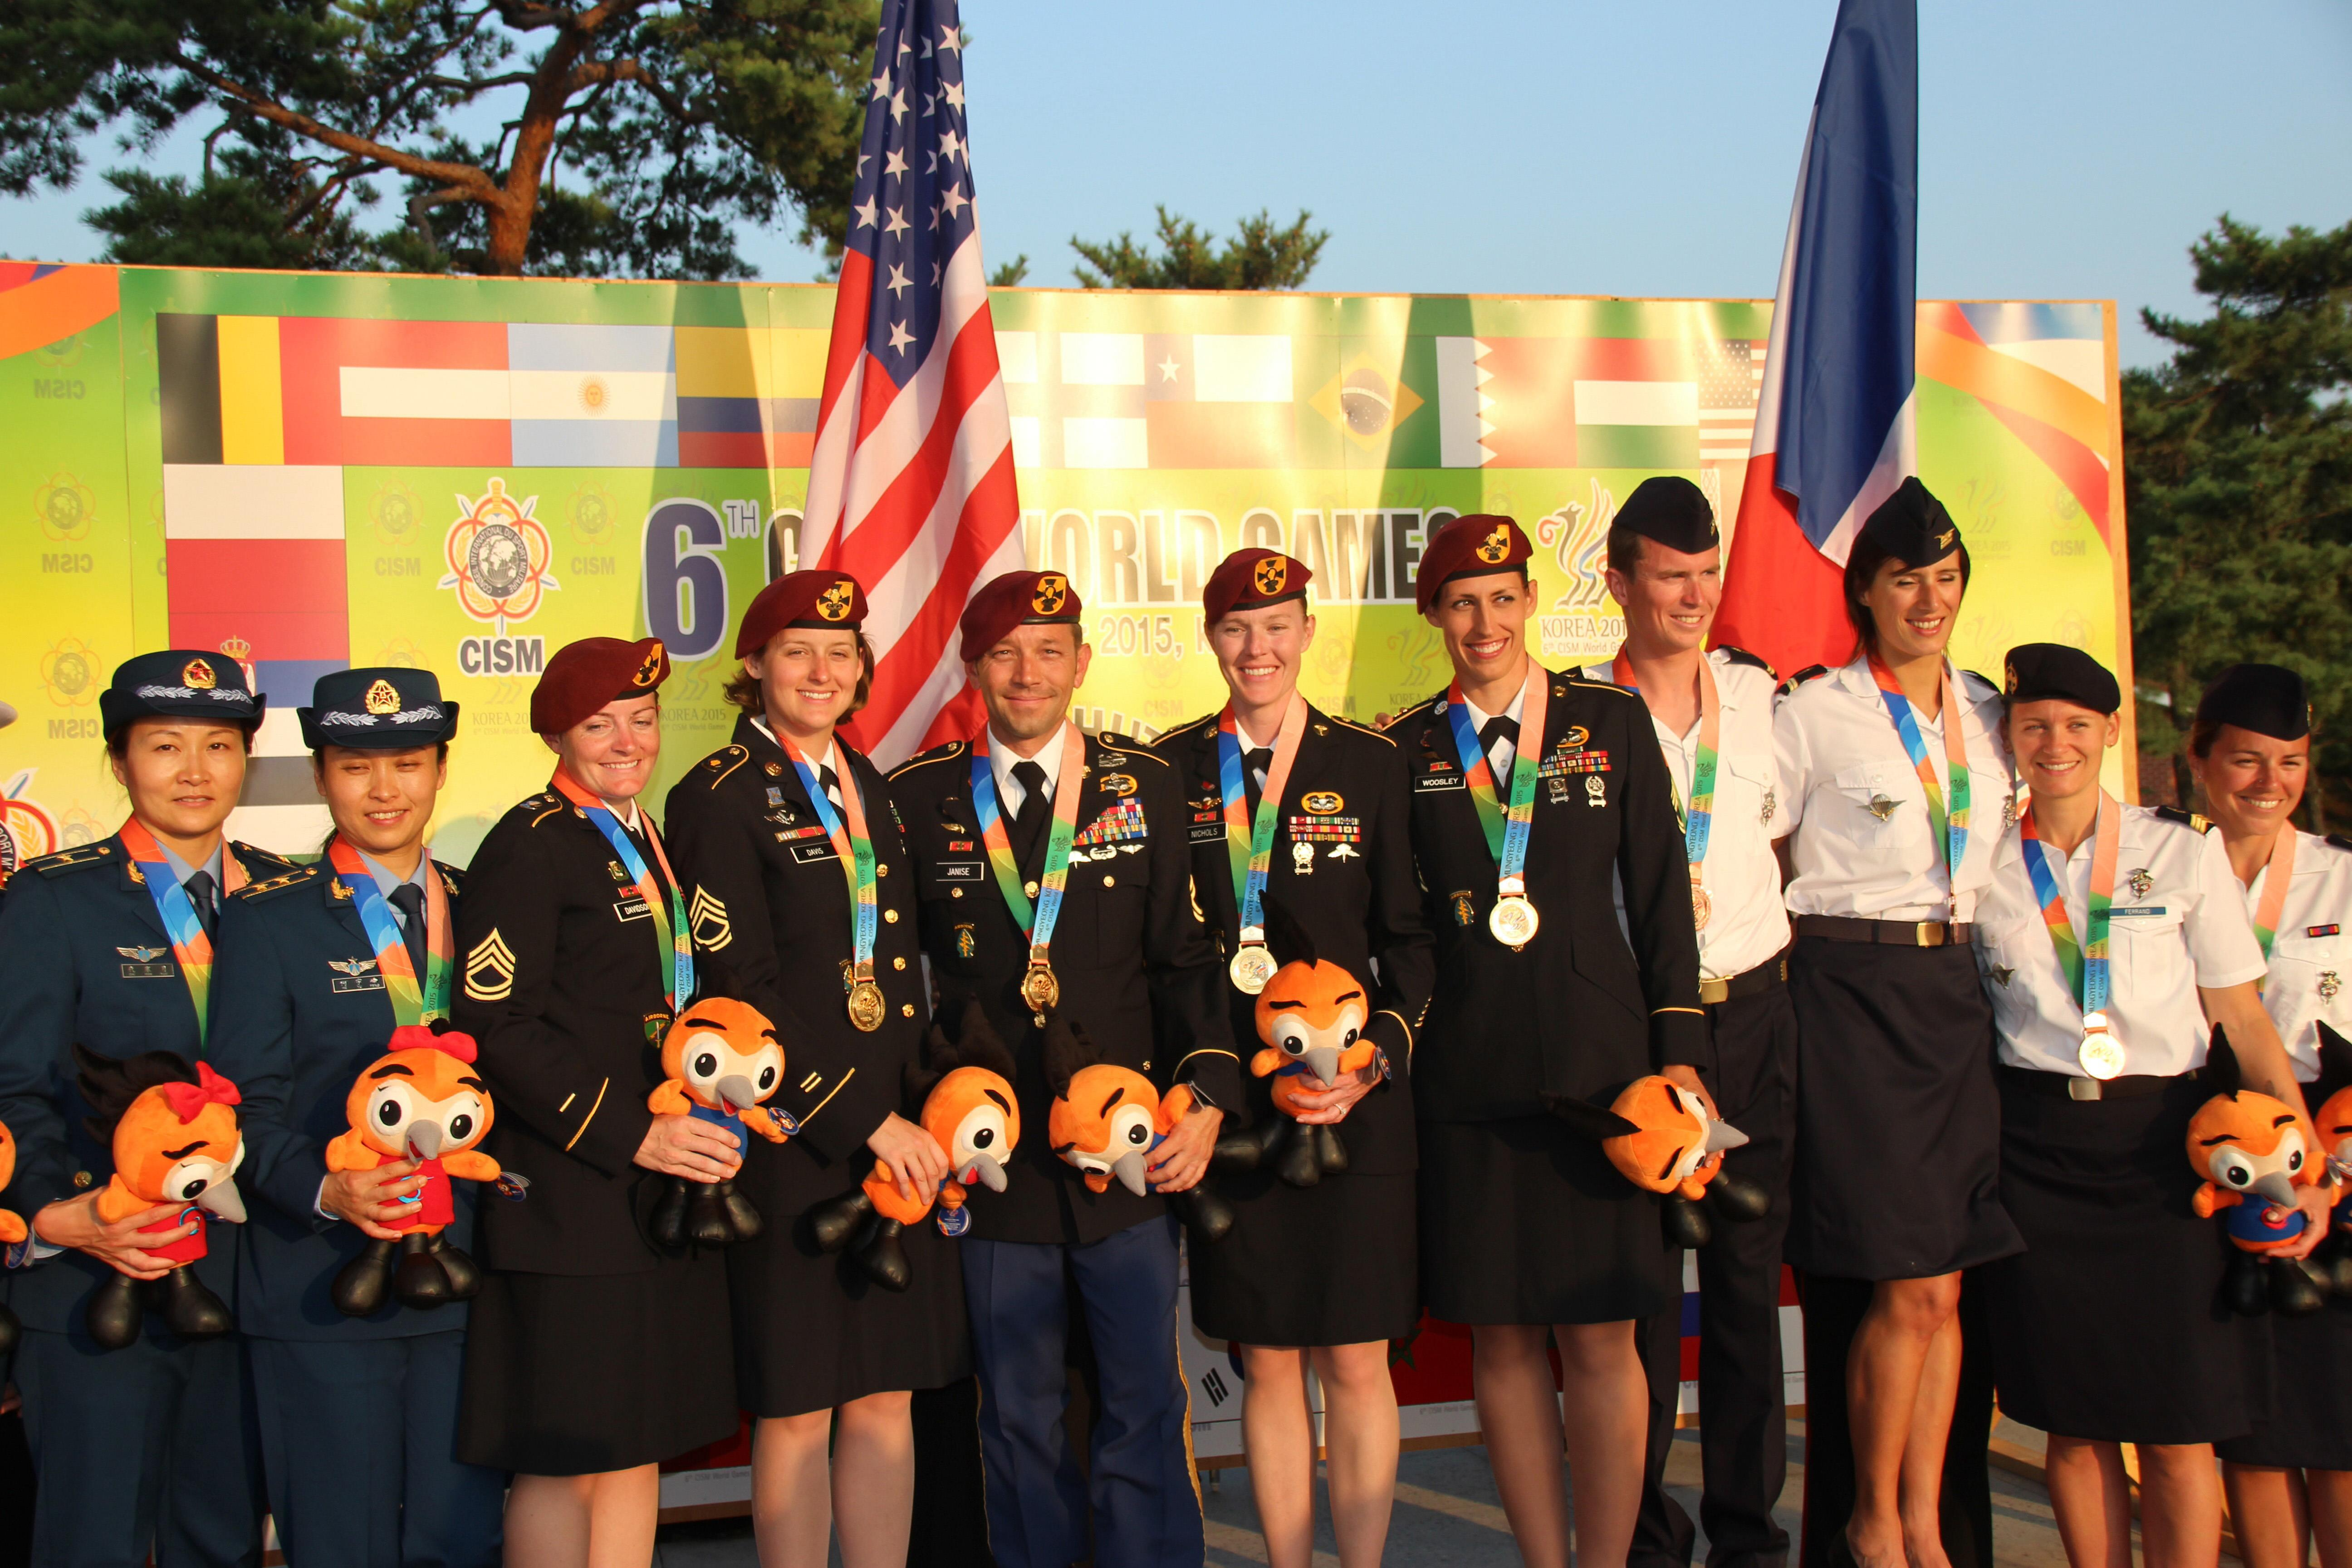 Qualifying Standards for CISM Military World Games > Armed